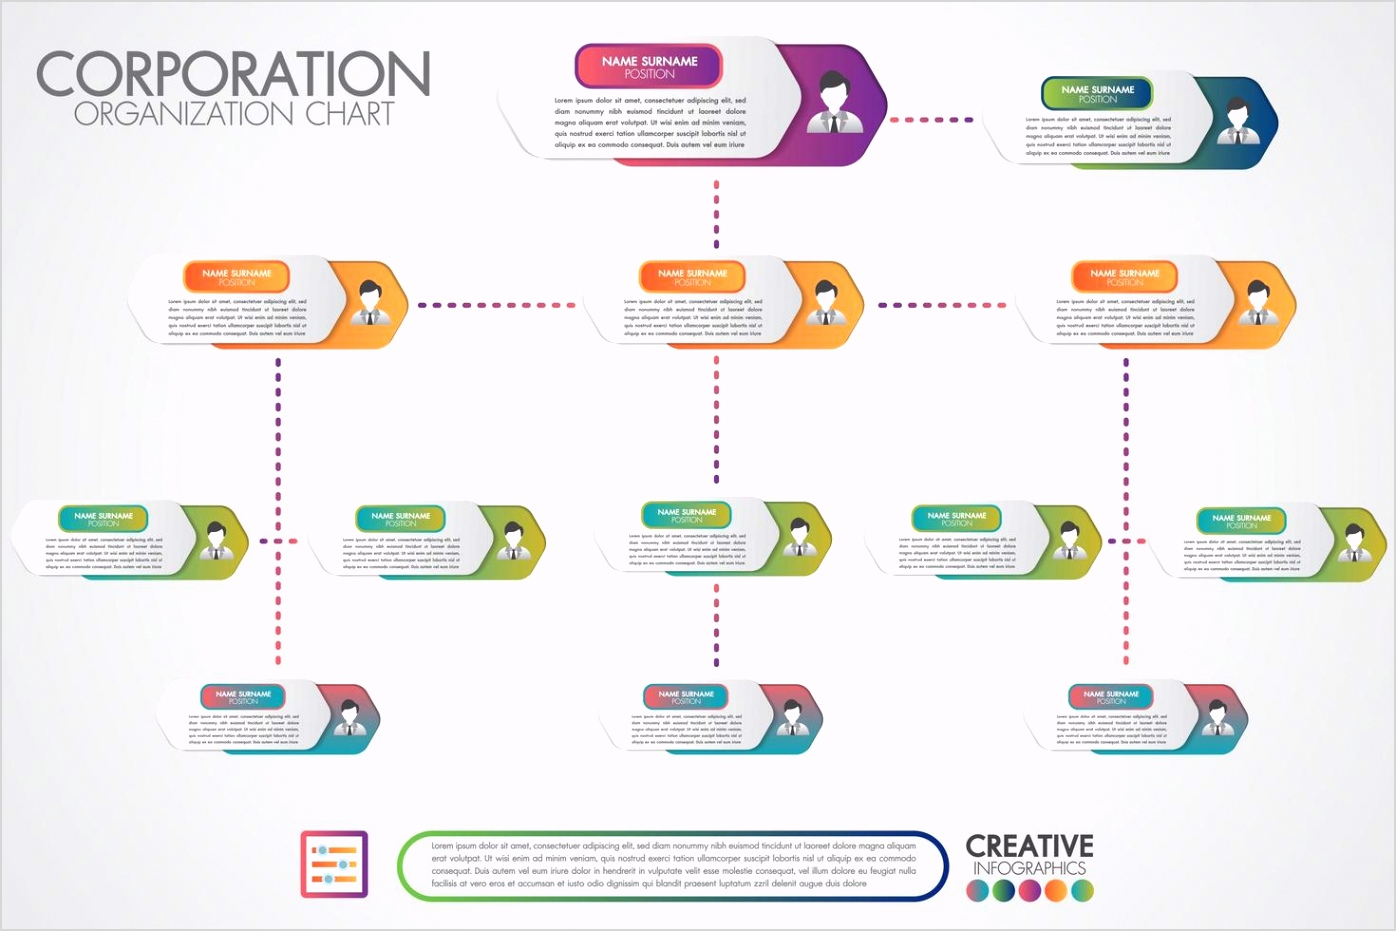 corporate organization chart template vector